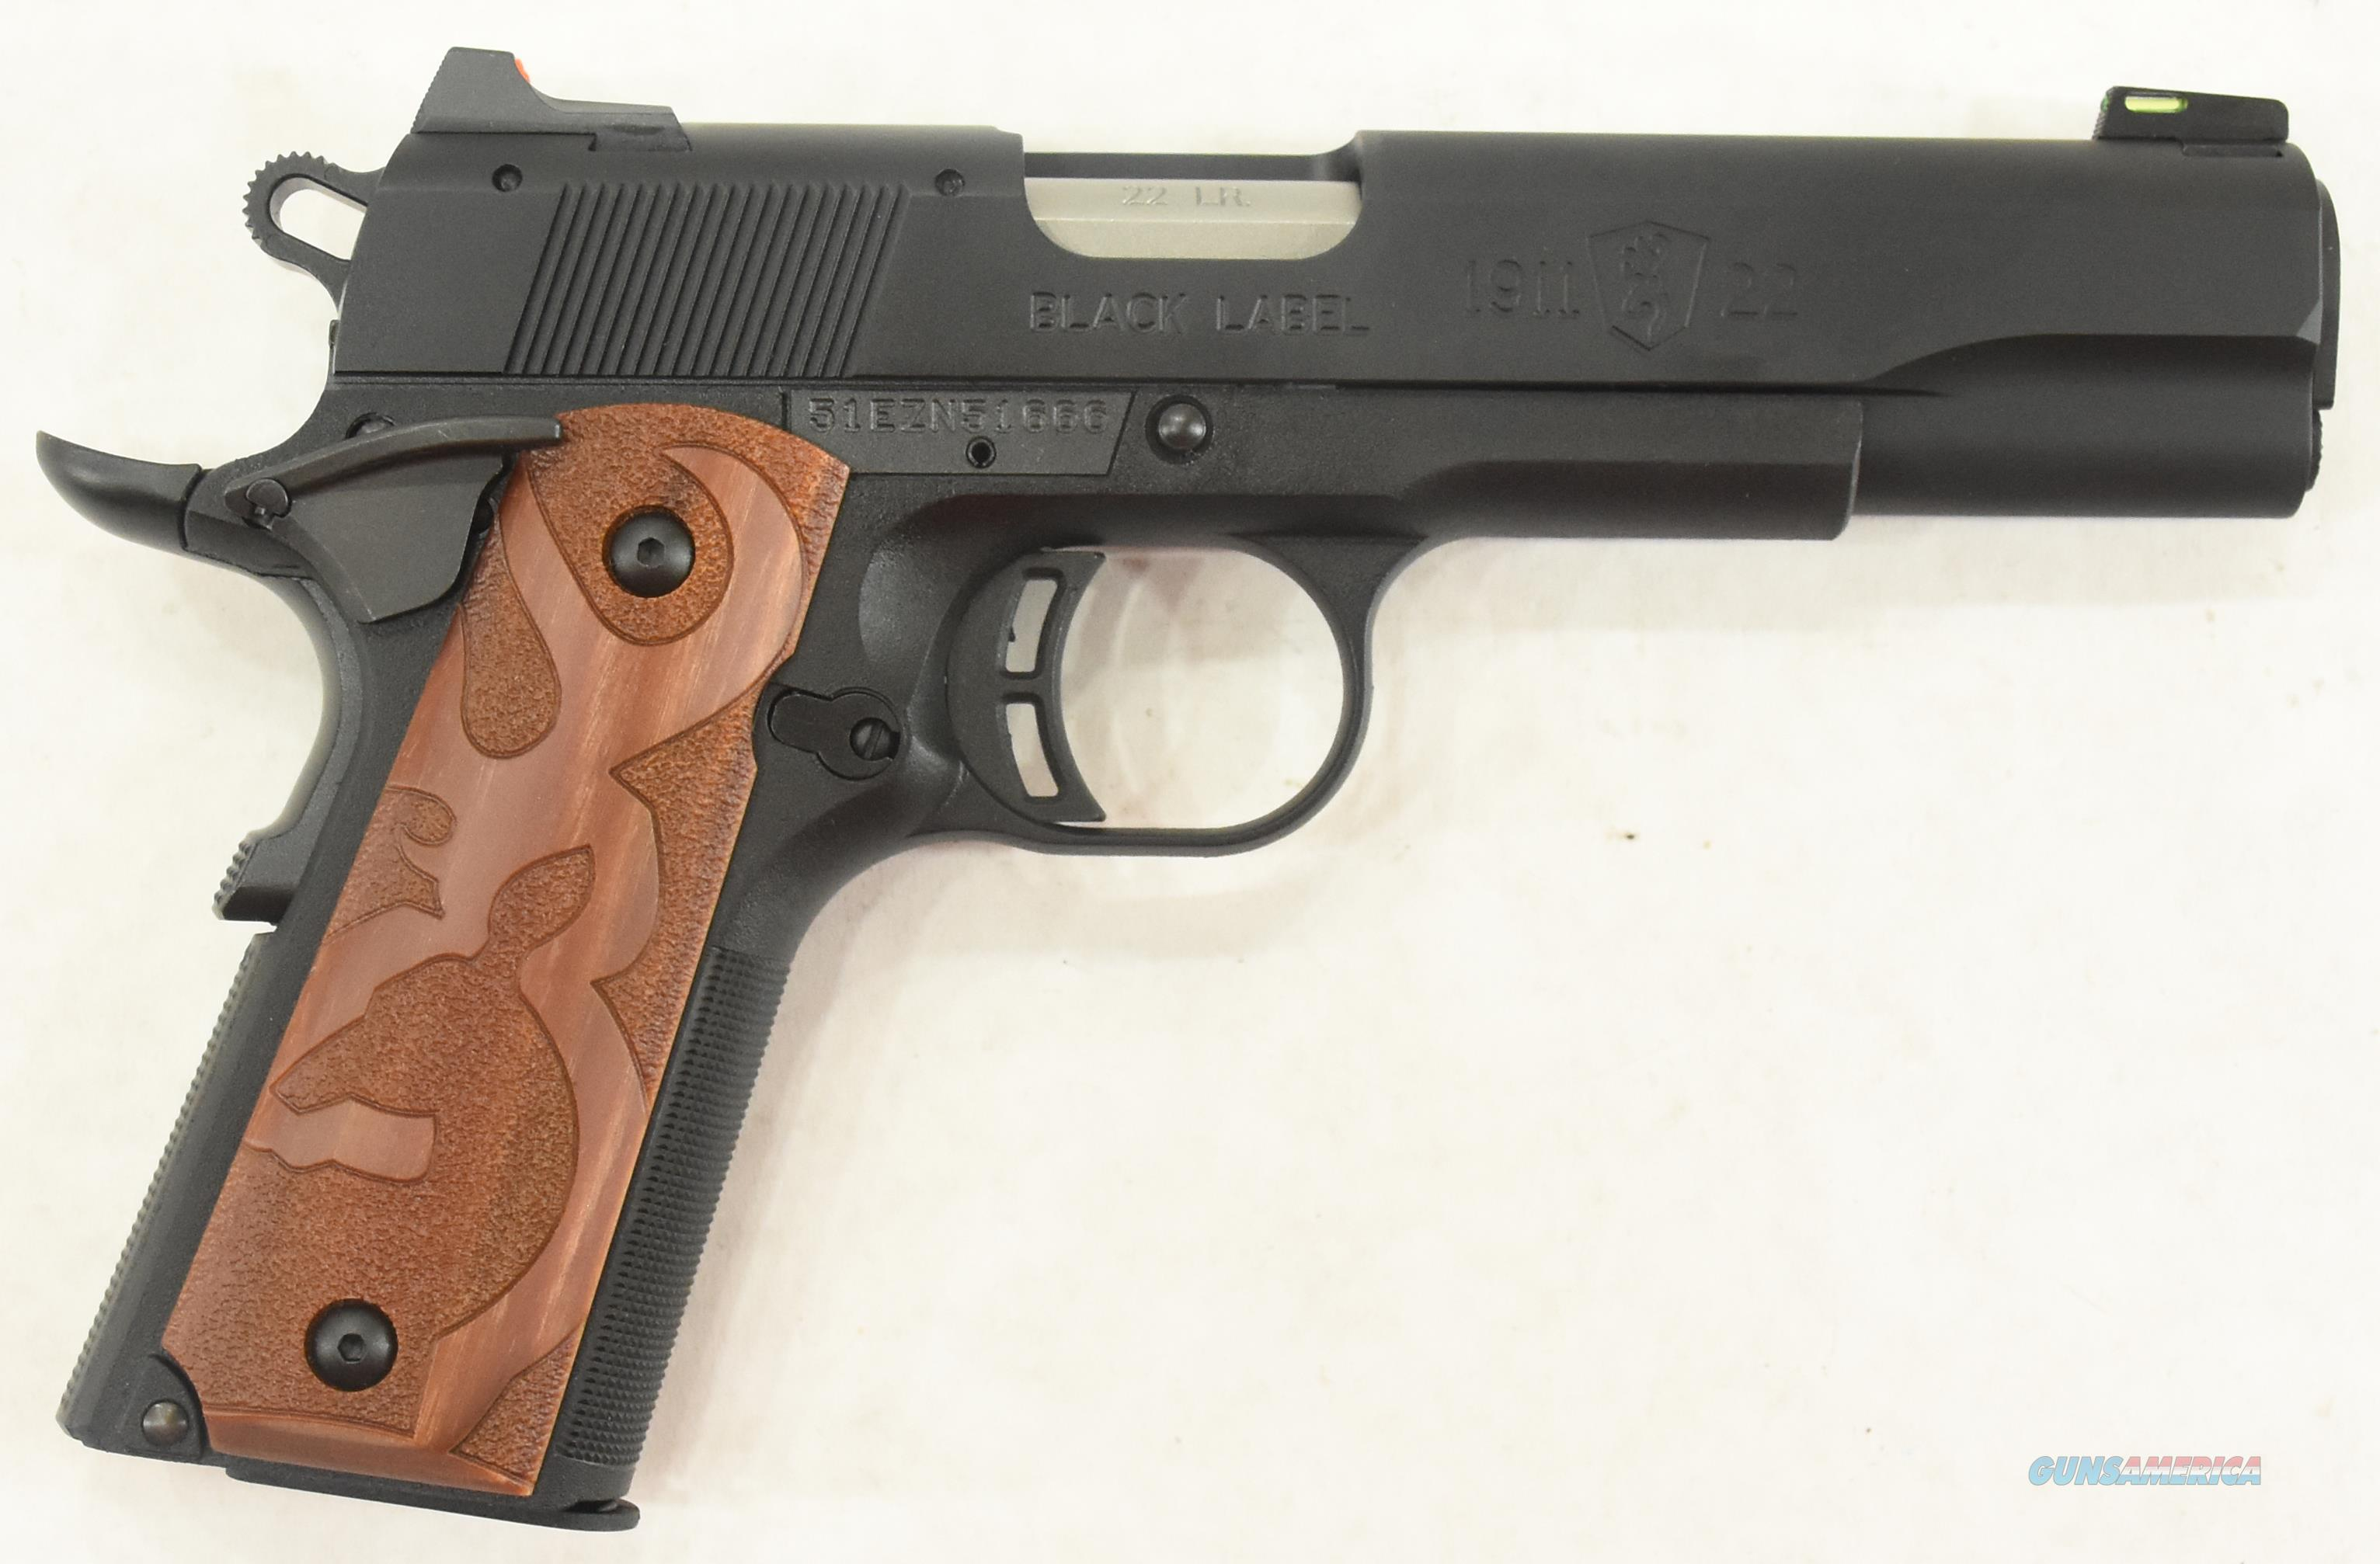 1911-22 Blk Label Brown Logo 22LR 4.25In  051871490  Guns > Pistols > Browning Pistols > Other Autos